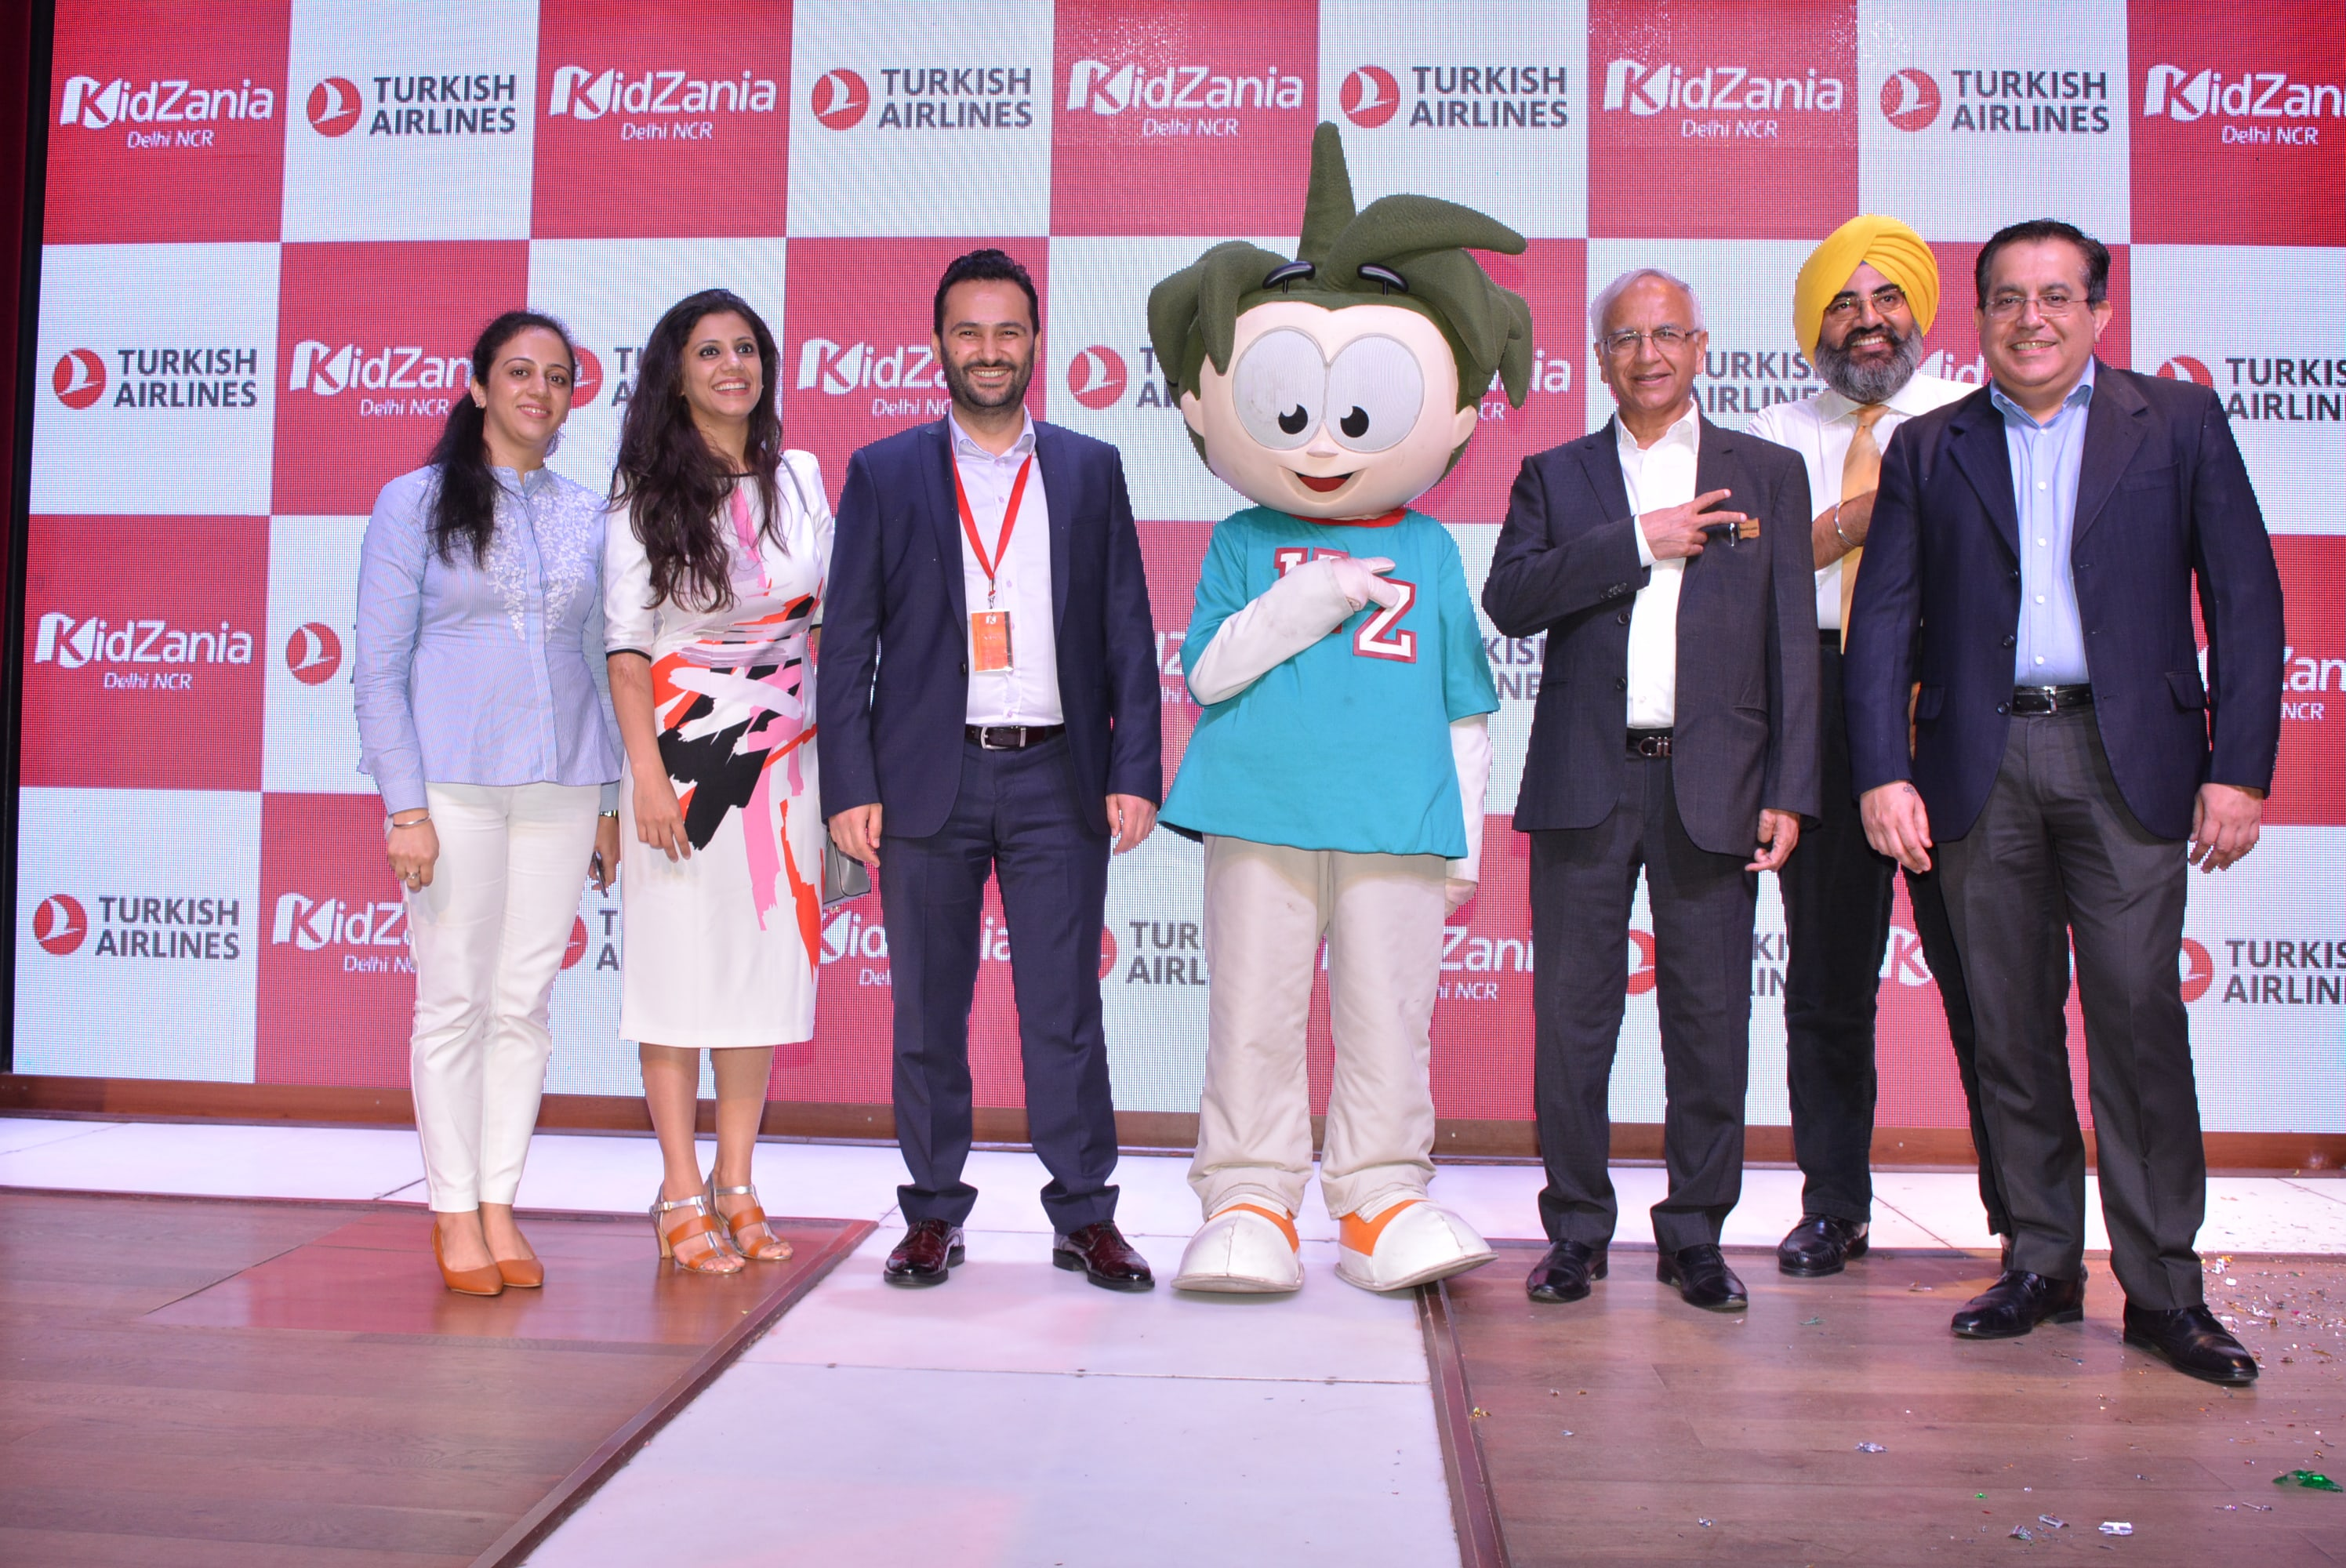 Turkish Airlines and Kidzania join hands to launch aviation academy activity for kids